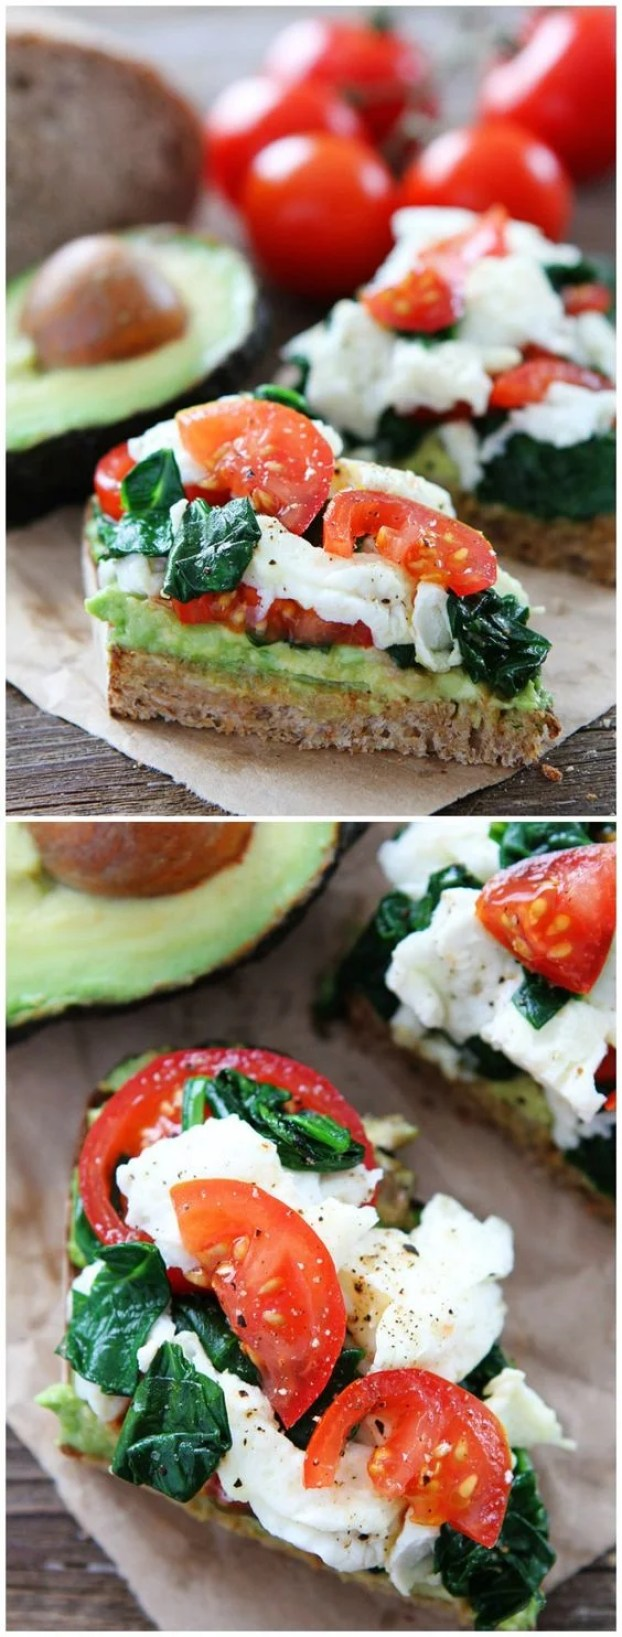 This avocado breakfast toast looks soo YUMMY! This is already so similar to what I eat for breakfast already, might as well put it on toast!